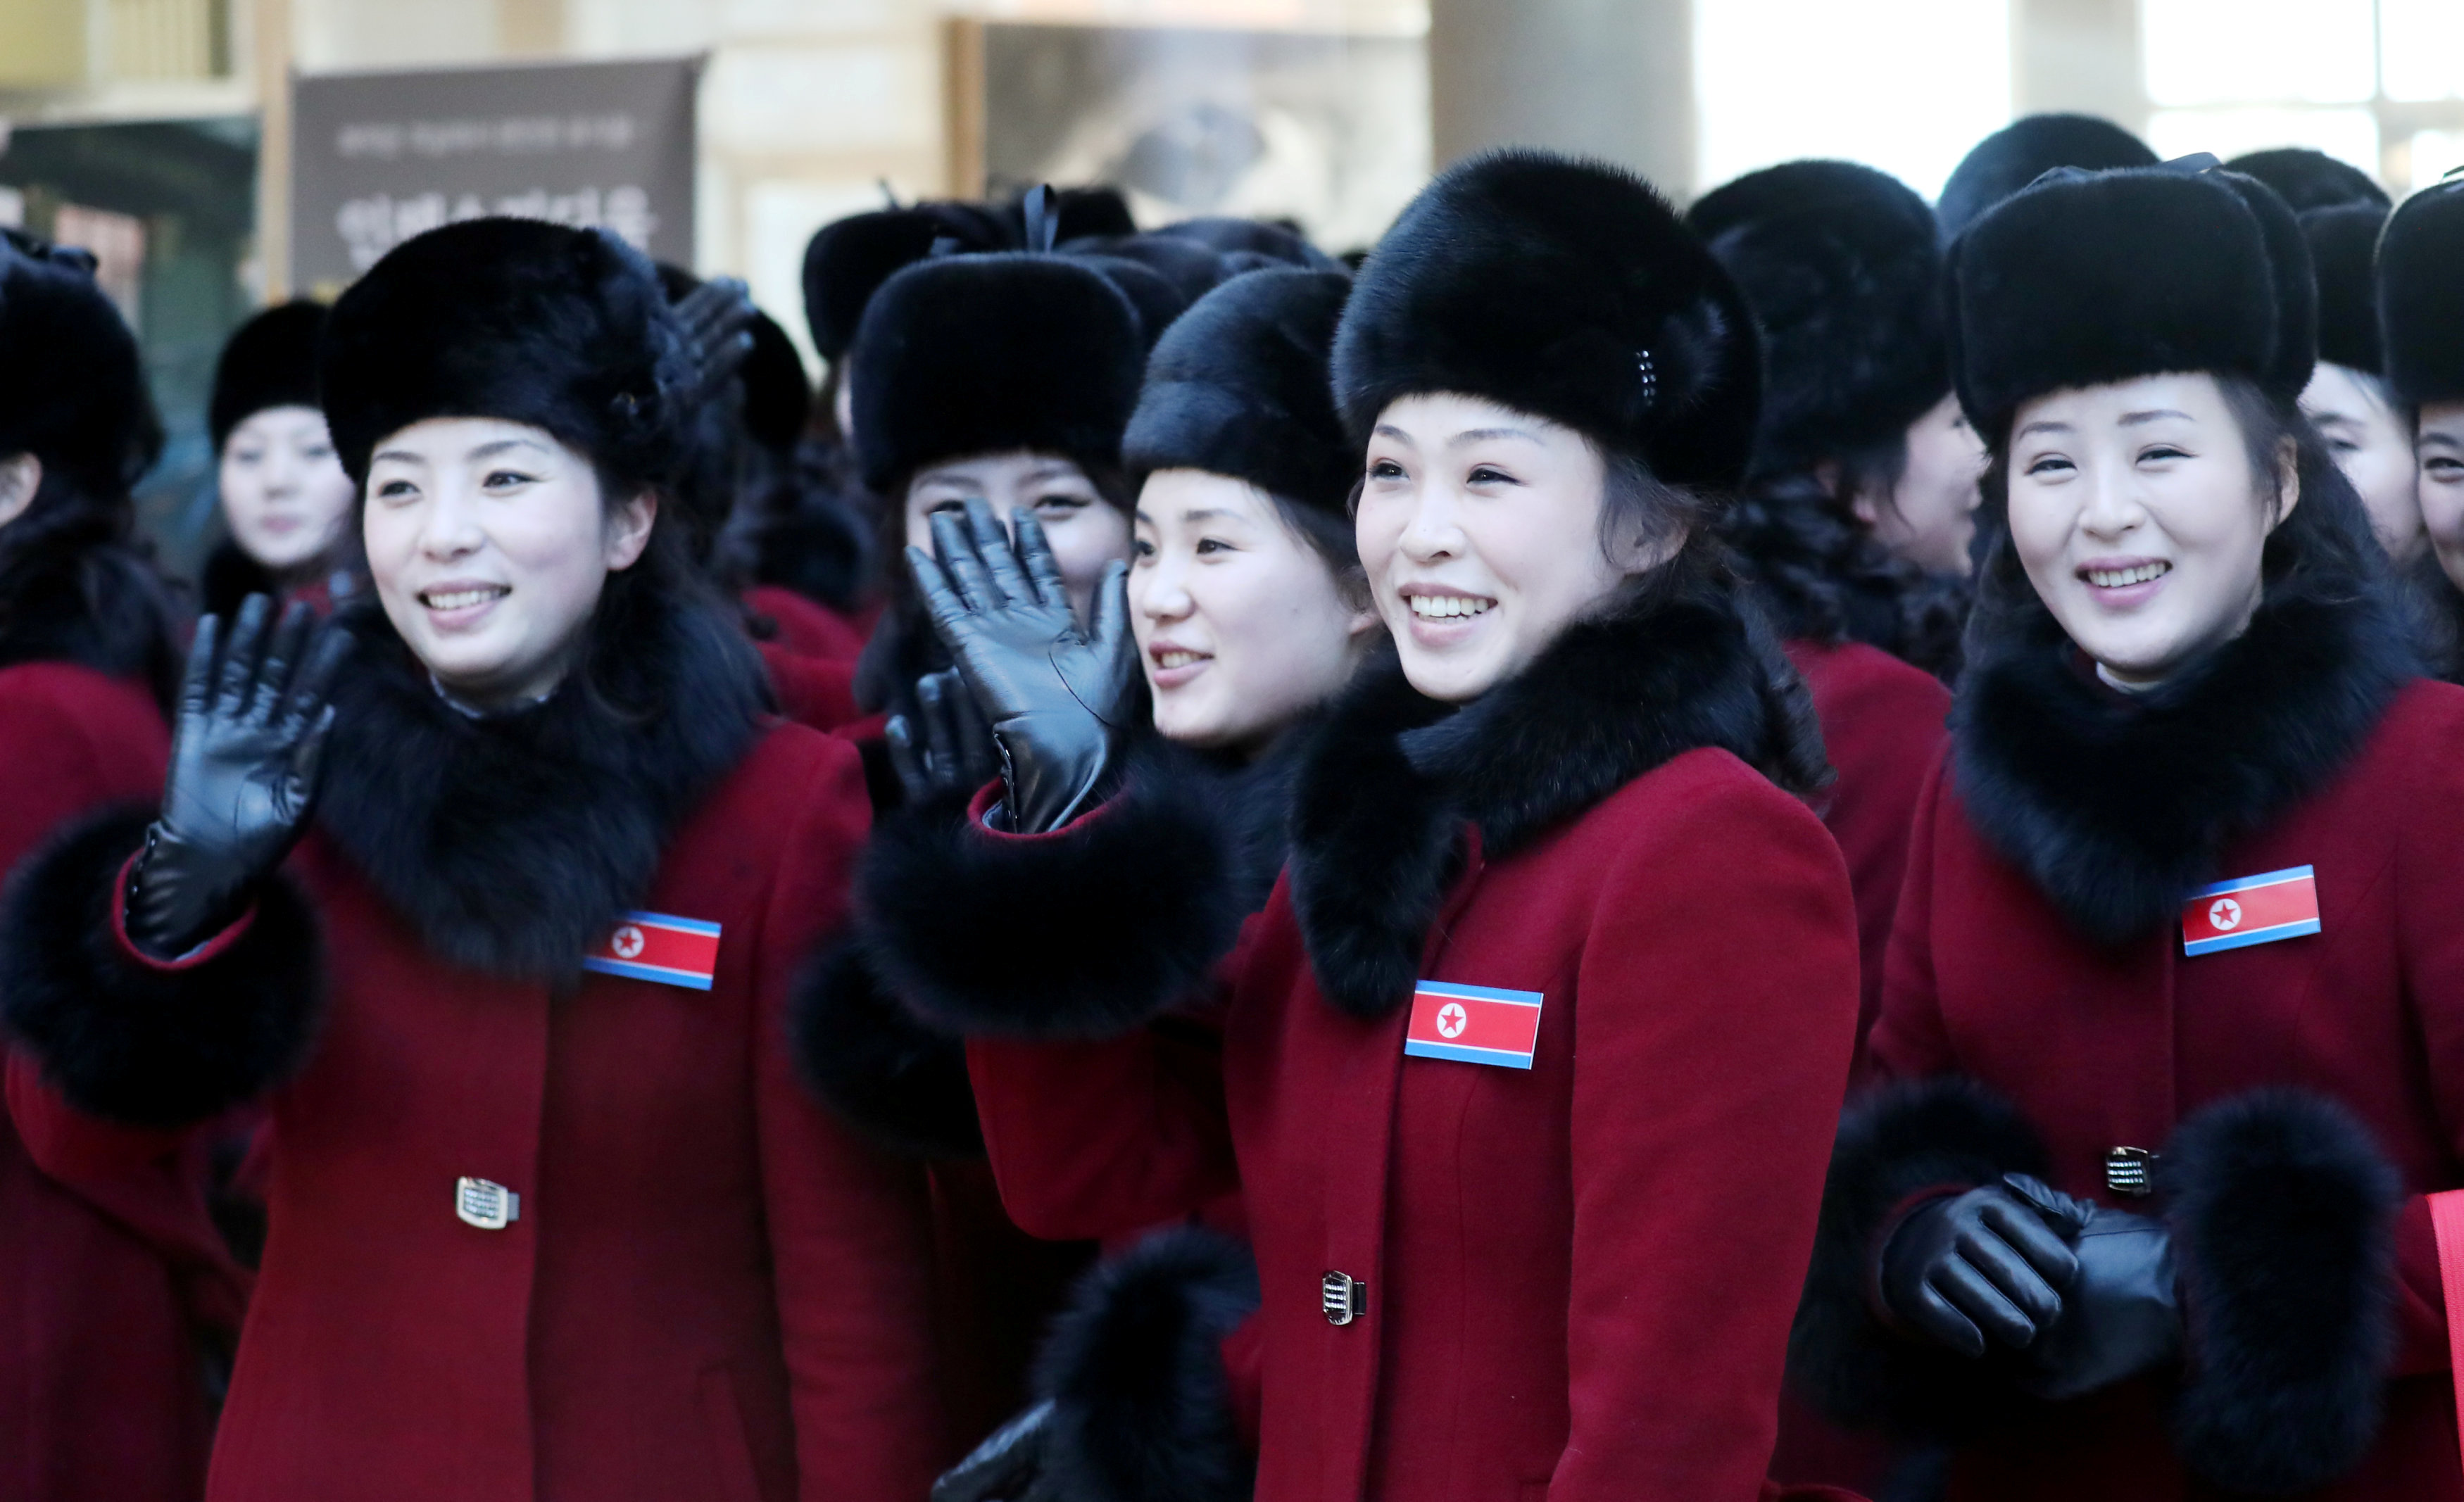 Members of North Korean cheering squad arrive at a hotel in Inje, South Korea, February 7, 2018.